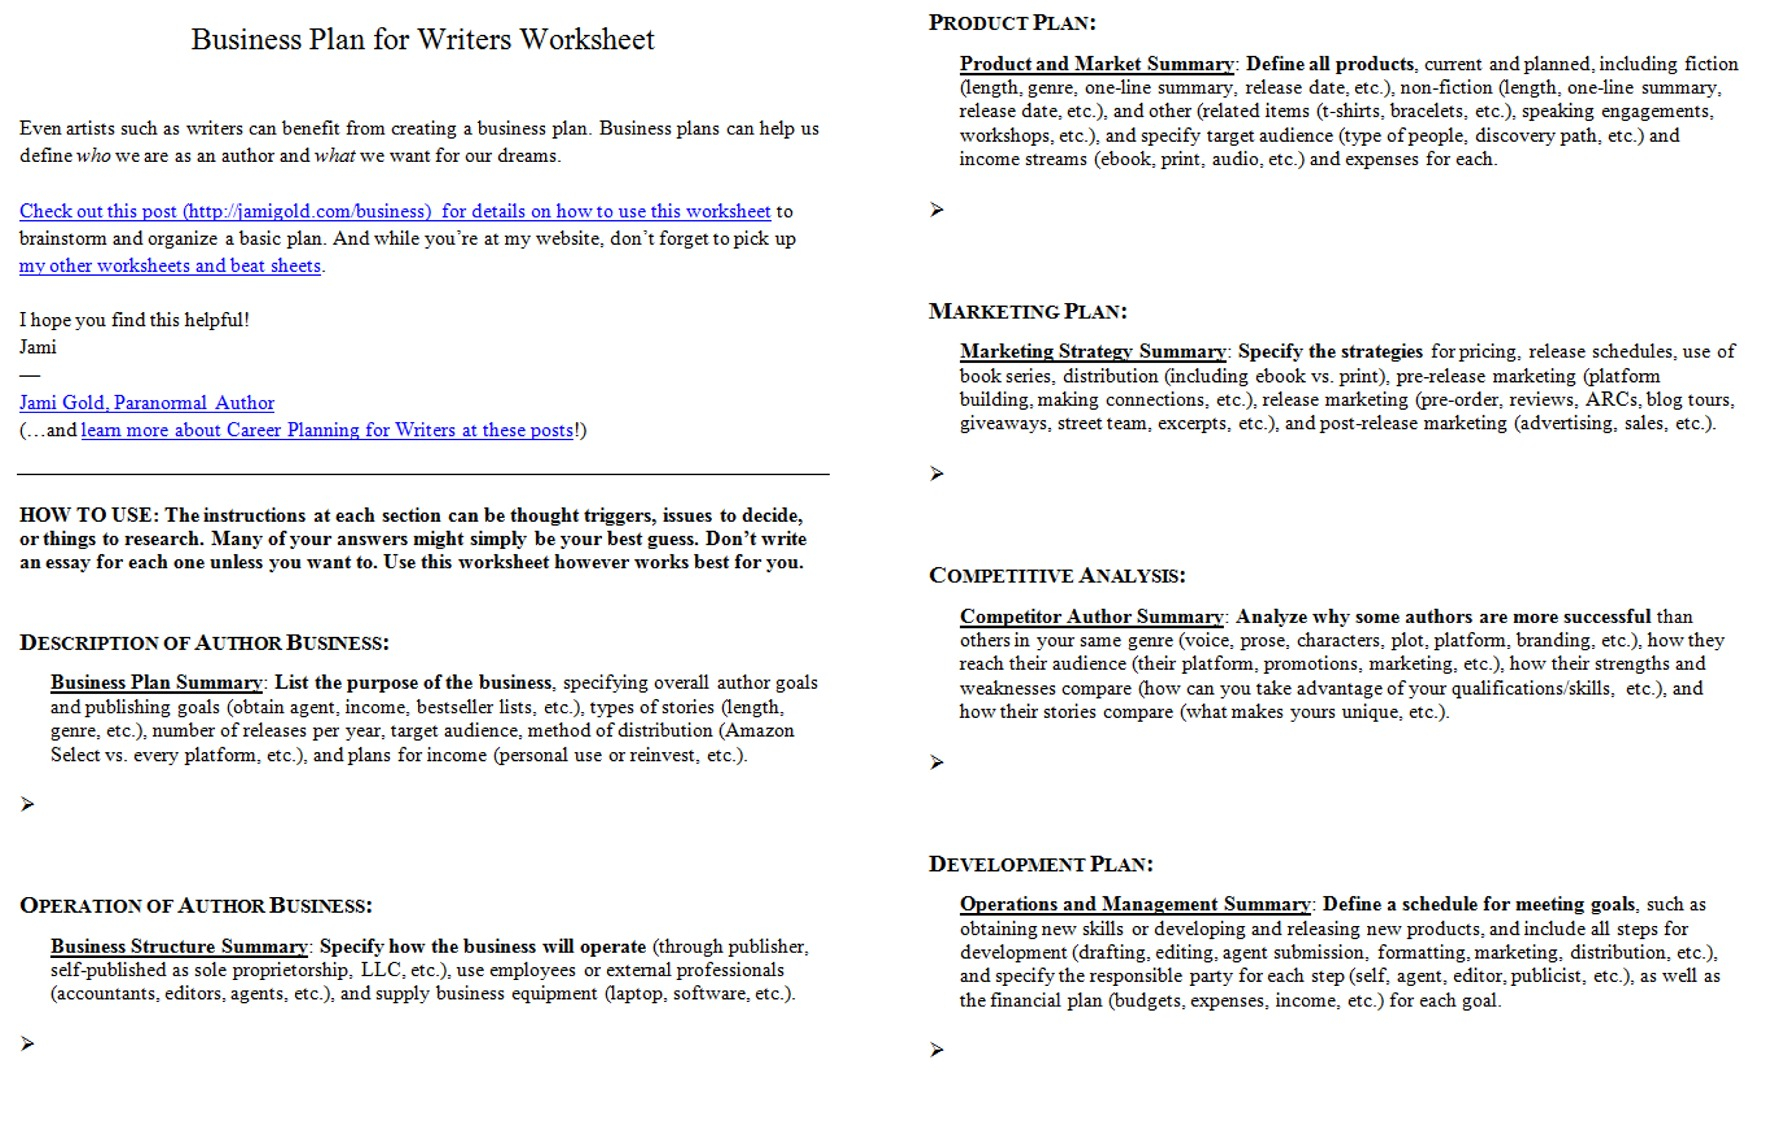 Weirdmailus  Inspiring Worksheets For Writers  Jami Gold Paranormal Author With Outstanding Screen Shot Of Both Pages Of The Business Plan For Writers Worksheet With Delightful Similar Shapes Proportions Worksheet Also First Grade Math Worksheets Free Printables In Addition Telling Time To Half Hour Worksheet And Maths Multiplication Worksheets For Grade  As Well As Time Connectives Worksheet Ks Additionally Free Worksheets English From Jamigoldcom With Weirdmailus  Outstanding Worksheets For Writers  Jami Gold Paranormal Author With Delightful Screen Shot Of Both Pages Of The Business Plan For Writers Worksheet And Inspiring Similar Shapes Proportions Worksheet Also First Grade Math Worksheets Free Printables In Addition Telling Time To Half Hour Worksheet From Jamigoldcom